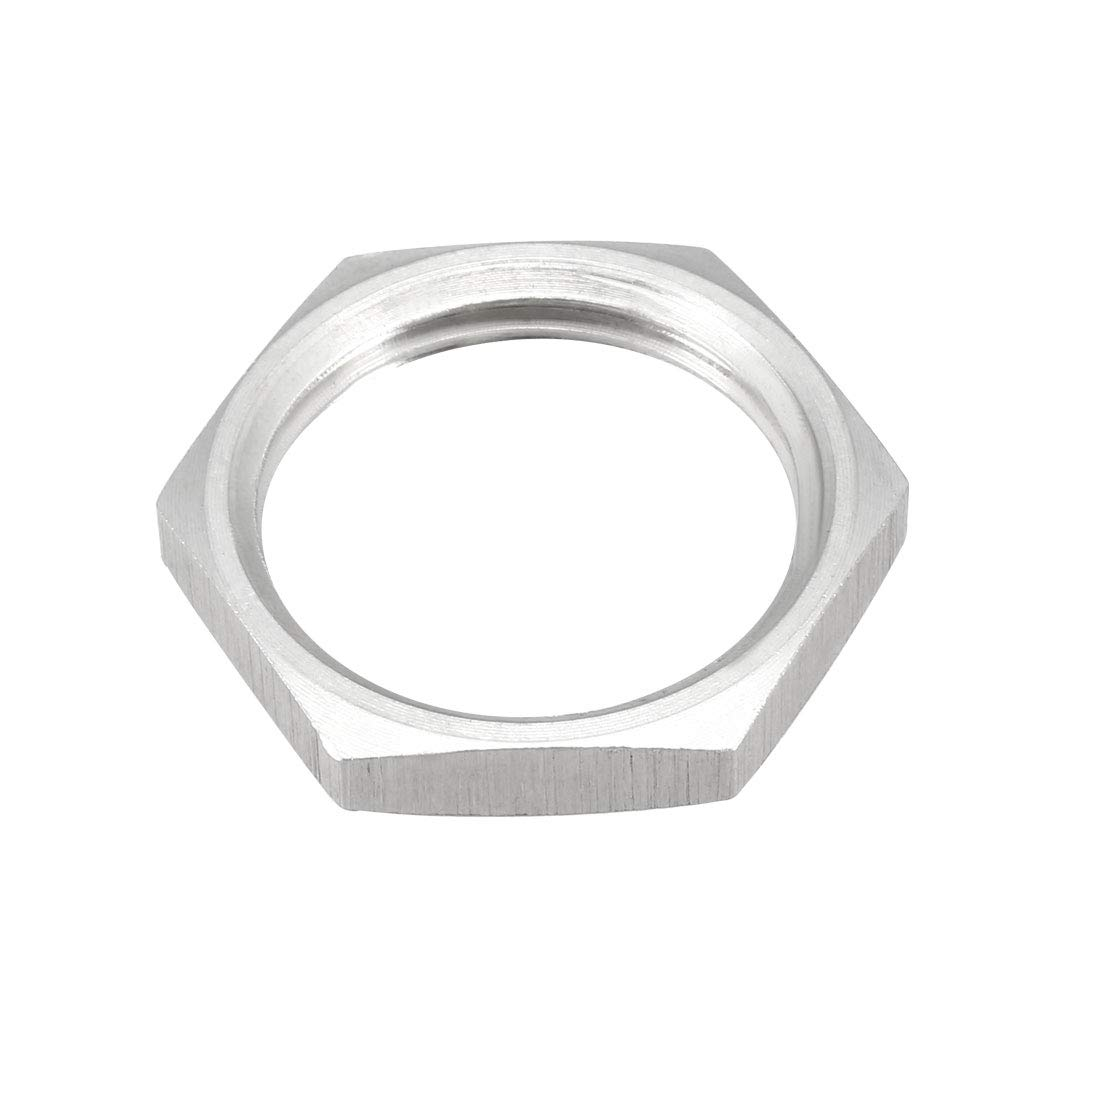 2 Pcs uxcell Pipe Fitting Hex Locknut SUS304 Stainless Steel G1//2 Inch Female Threaded